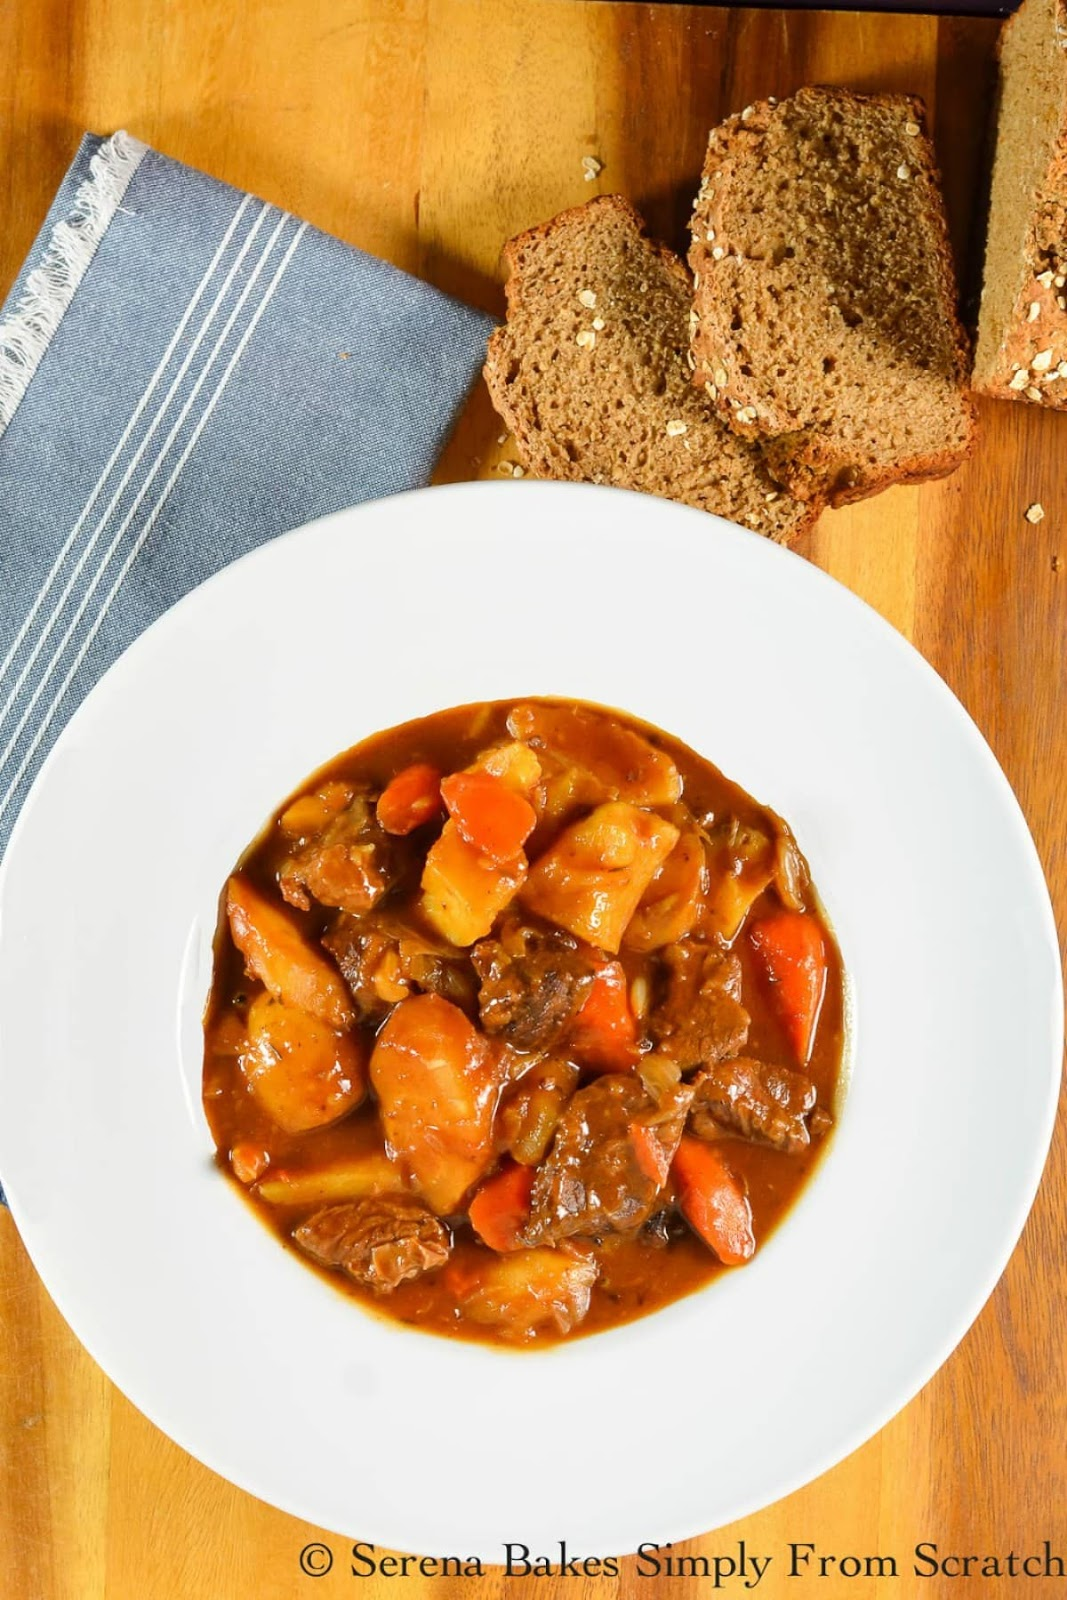 Irish Guinness Beef Stew recipe is an easy from scratch stew that is slow cooked in a hearty beef gravy with potatoes, carrots and parsnips from Serena Bakes Simply From Scratch. A favorite St. Patricks Day dinner recipe!